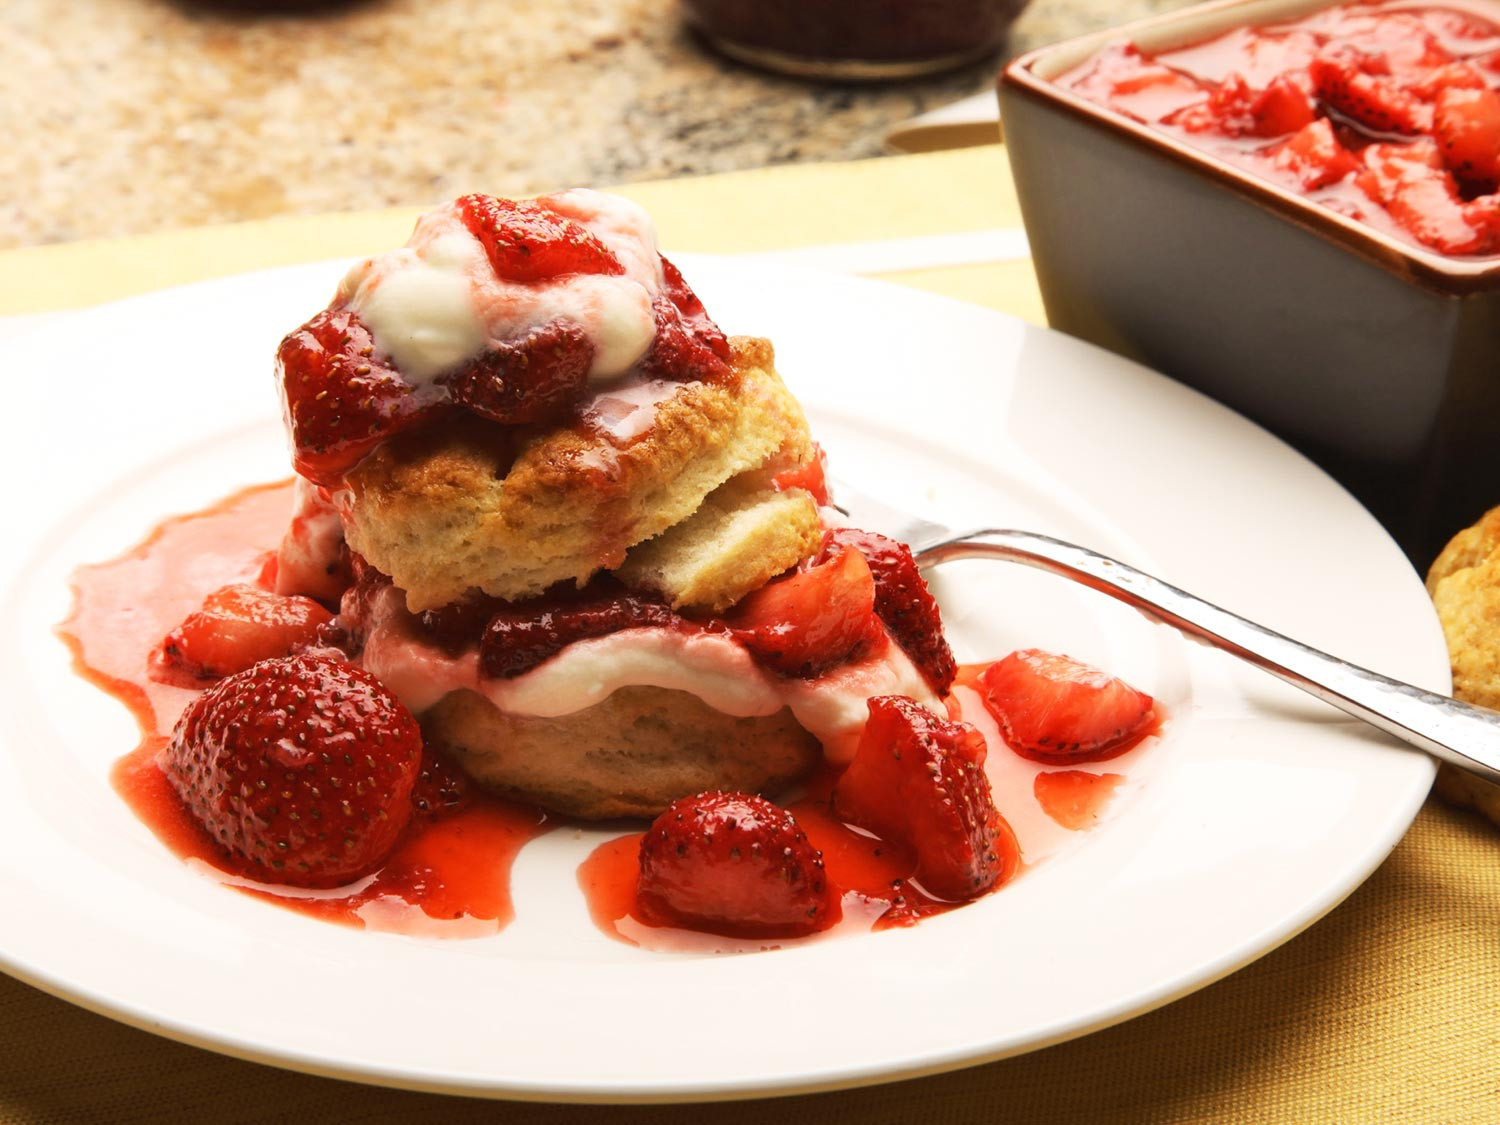 Strawberry Shortcake Biscuits Recipes  5 Ingre nts and 10 Minutes = Awesome Strawberry